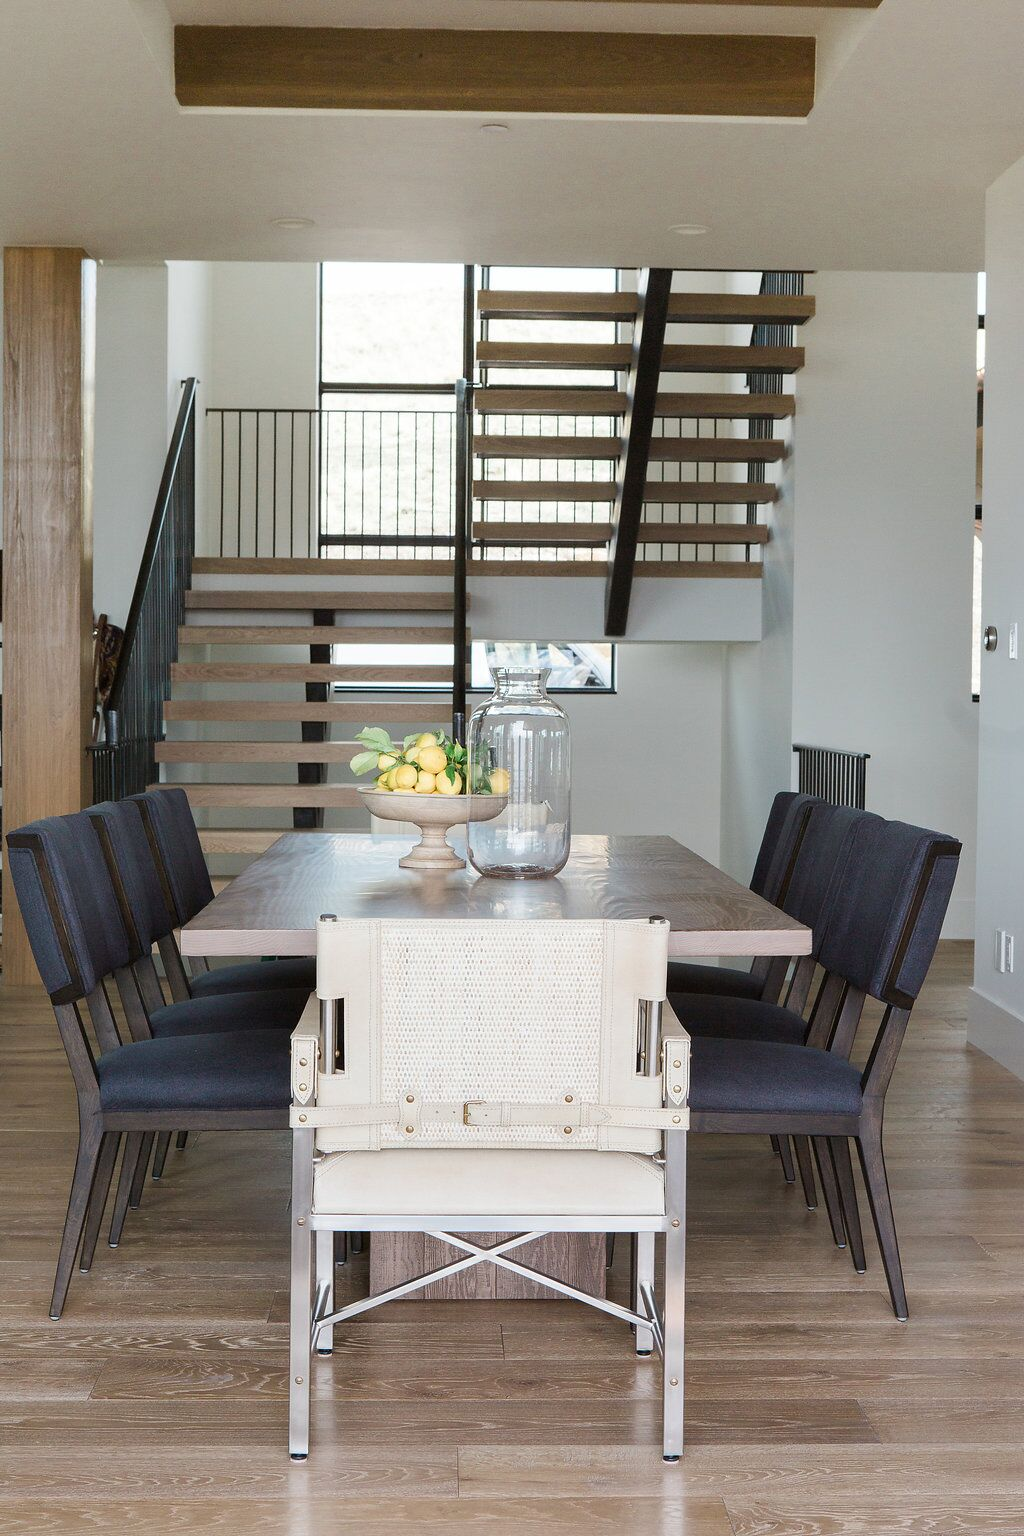 Long table with grey chairs and staircase in background